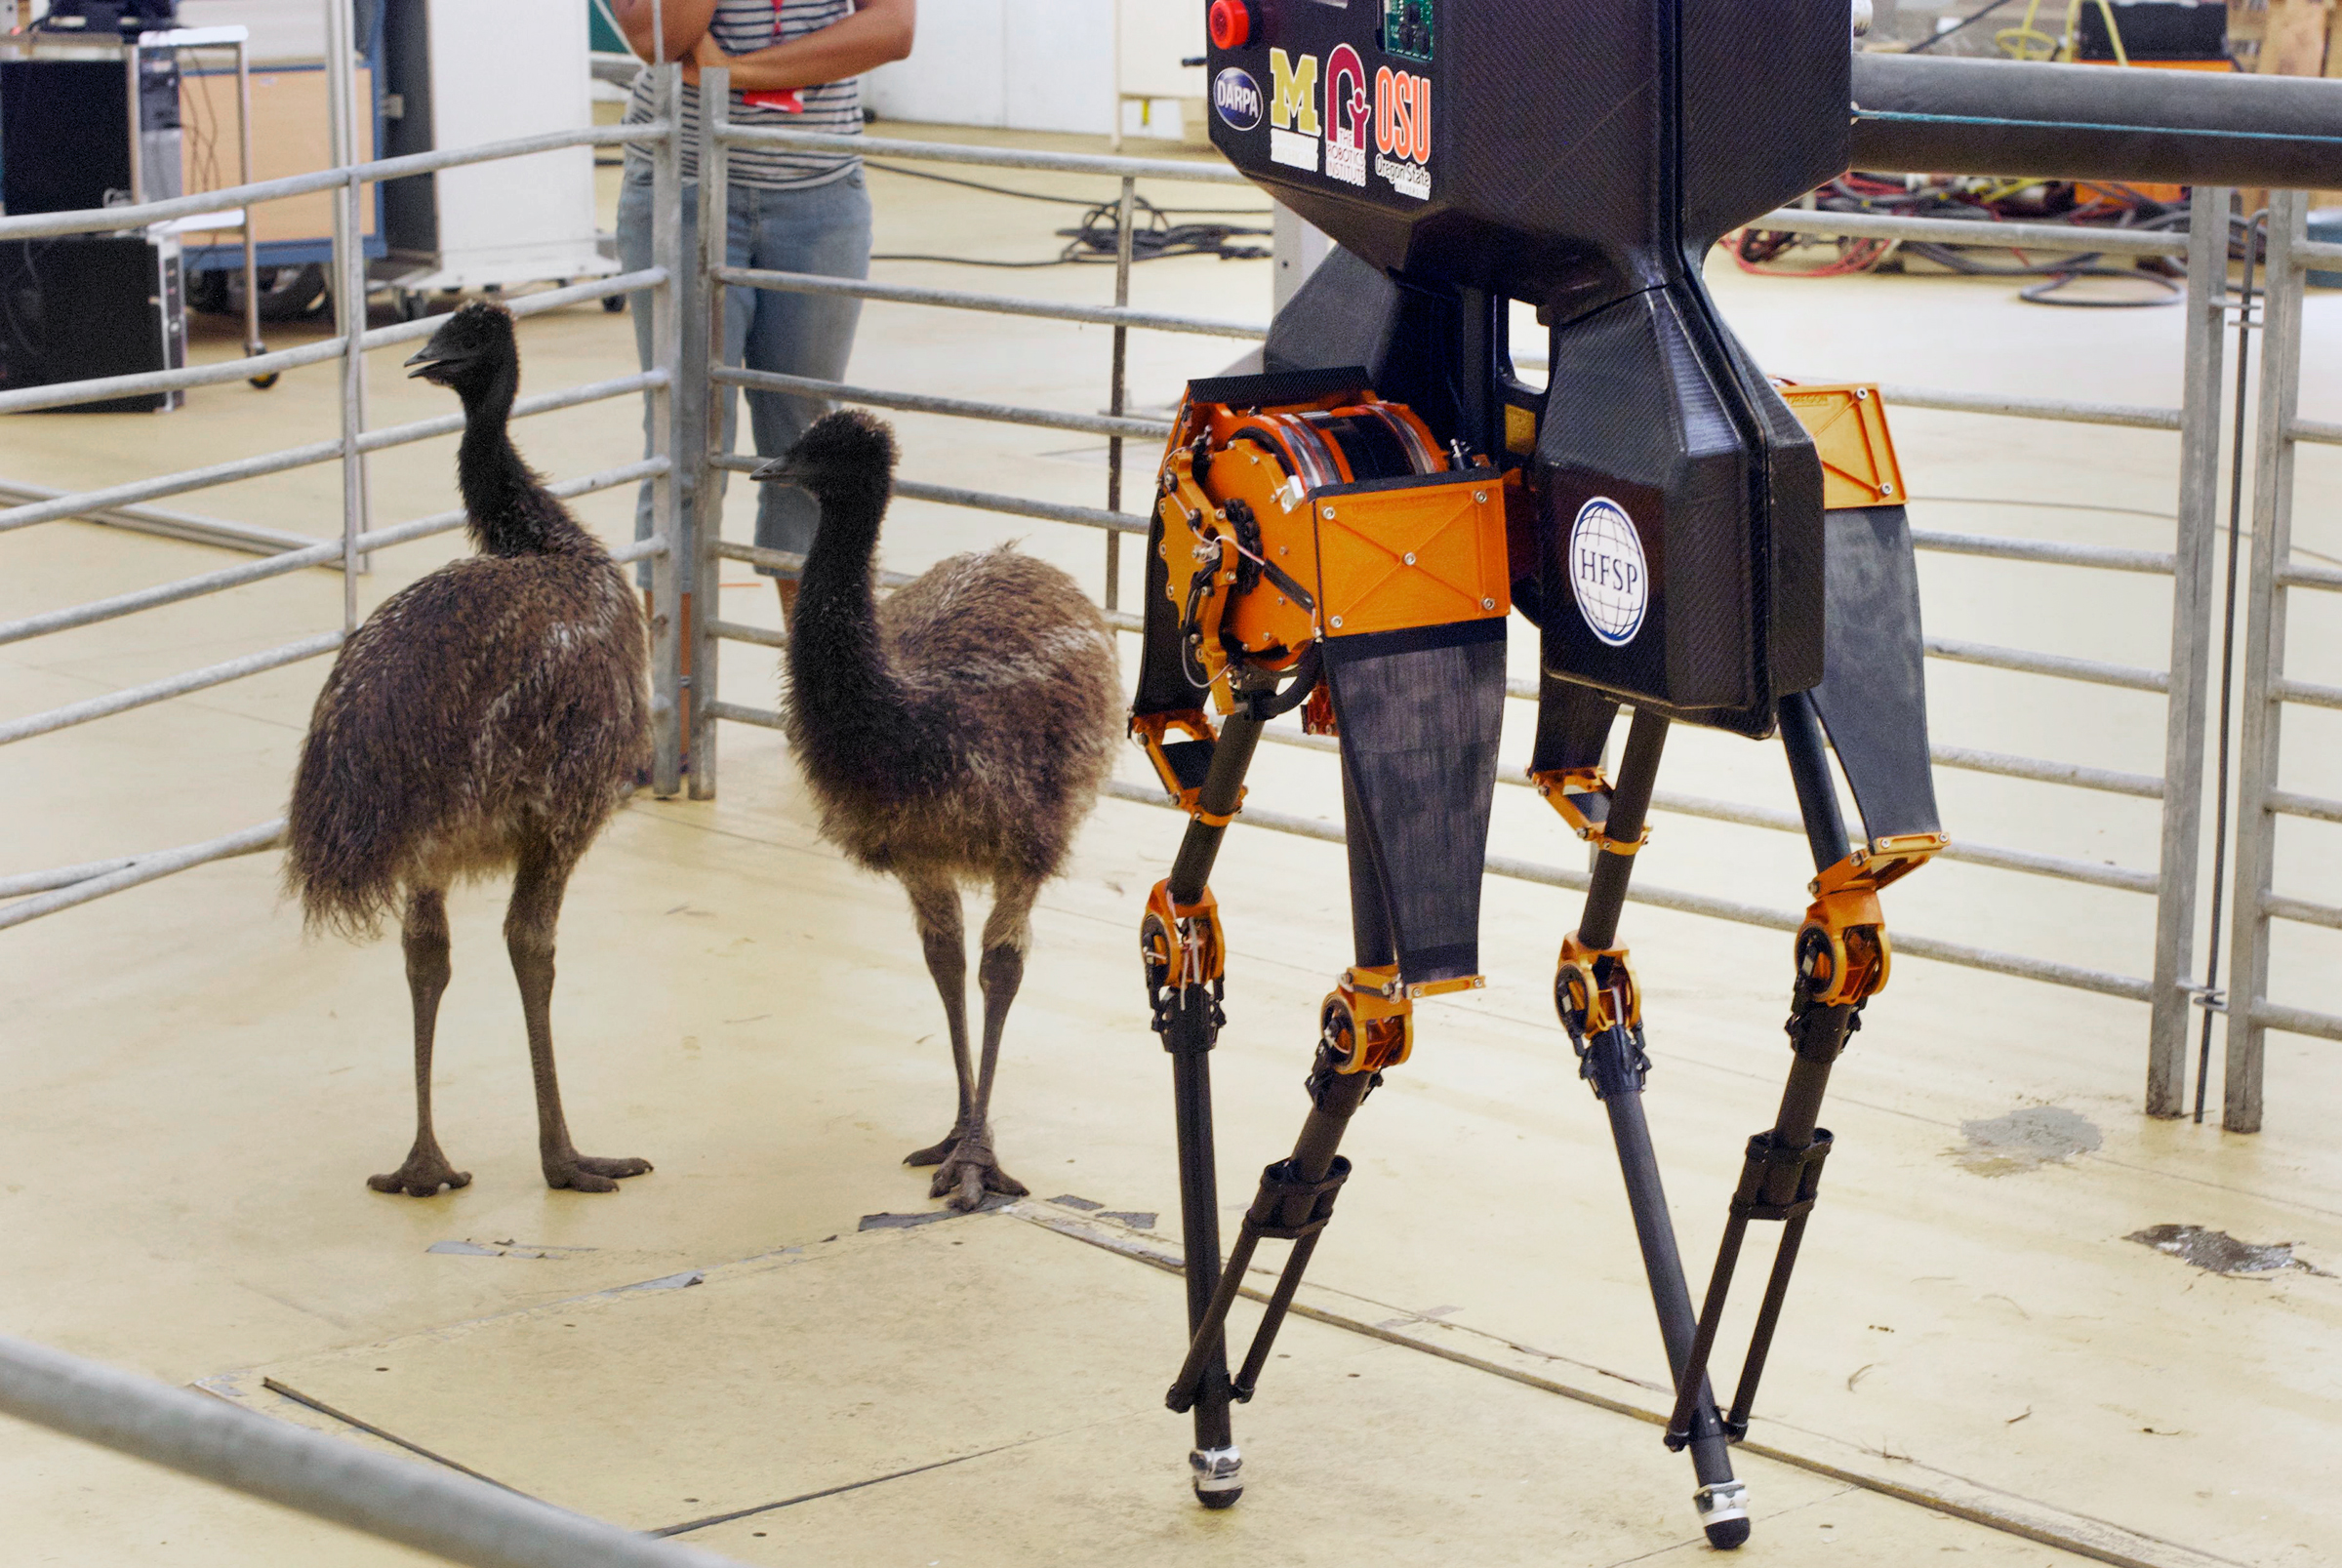 Young Emus—some of the birds that inspired the design—stand beside the ATRIAS. Dr. Alexander Spröwitz